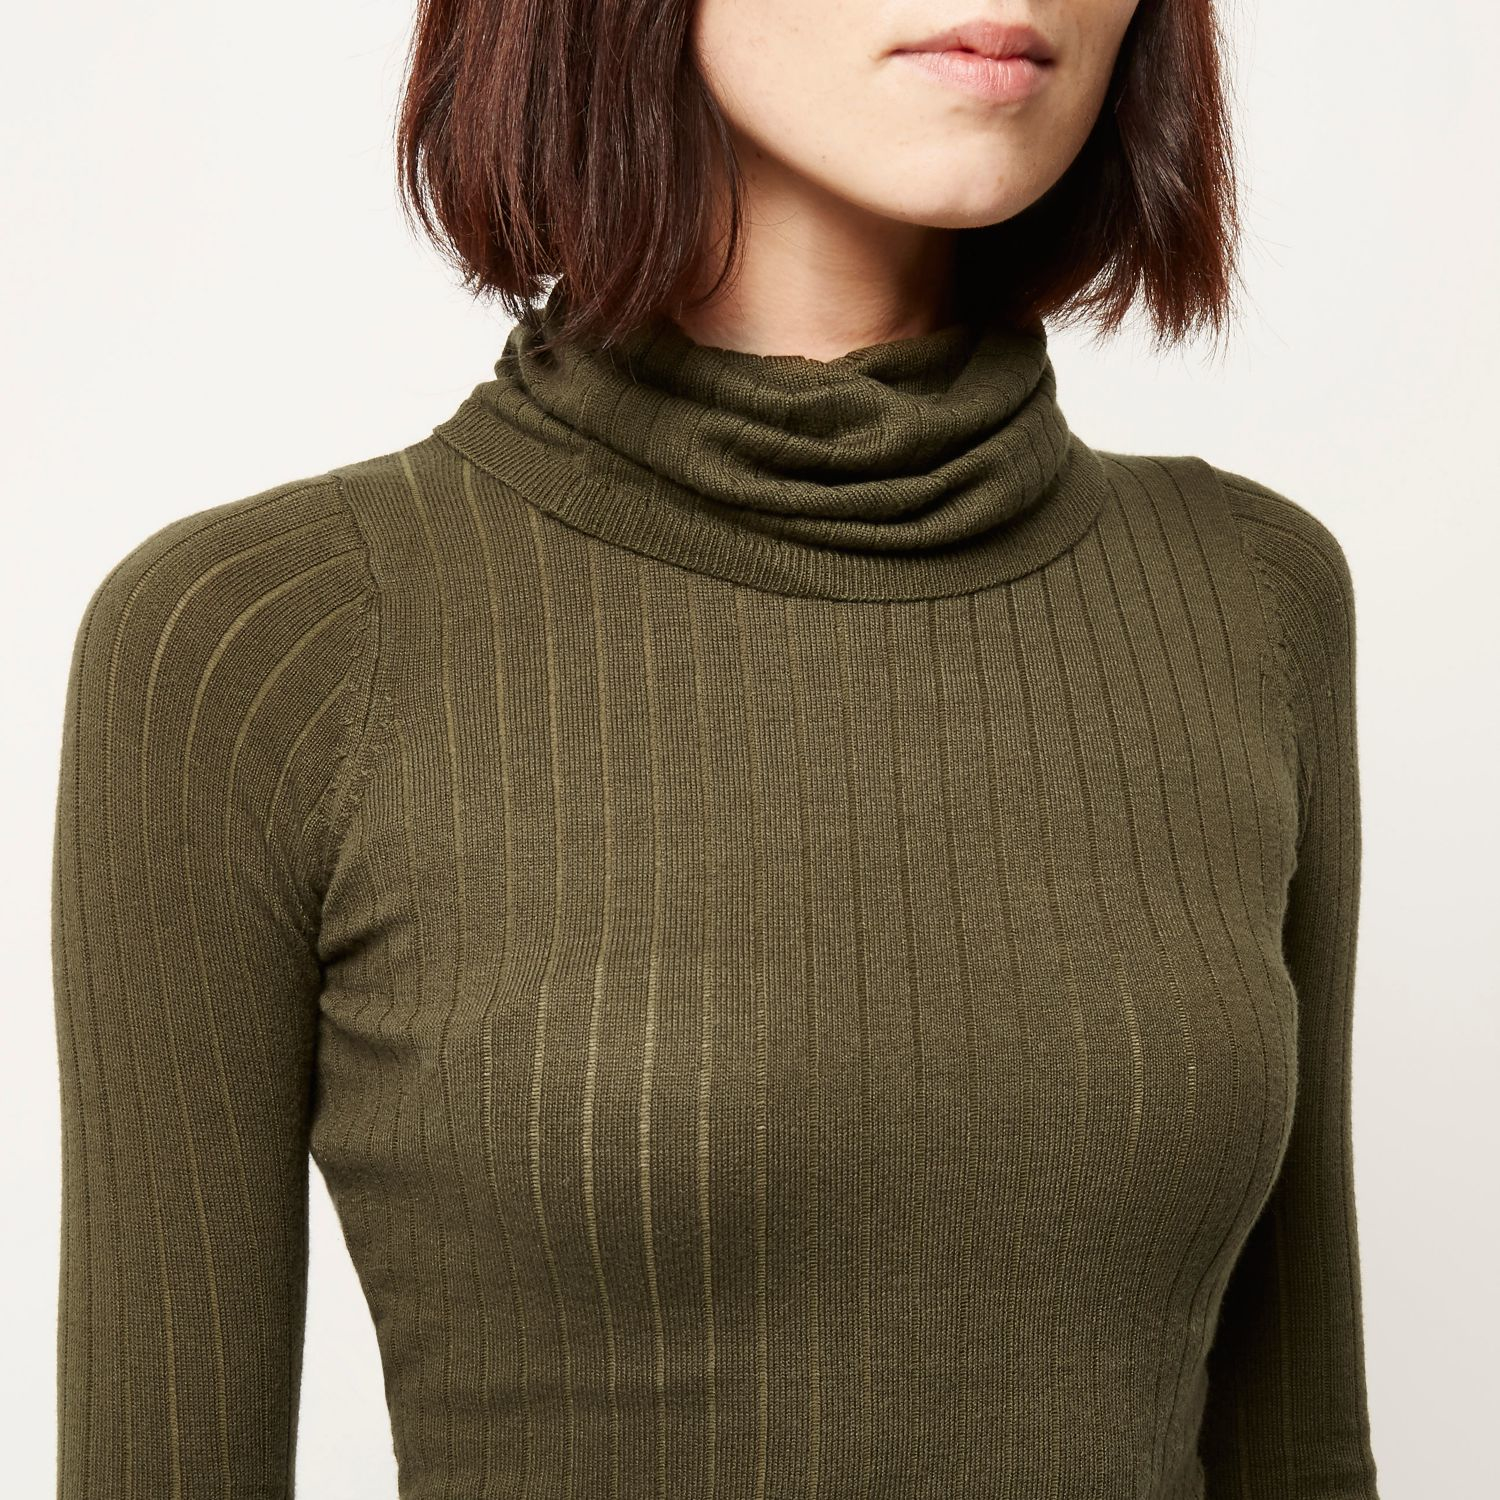 516860a8673 River Island Khaki Knitted Ribbed Roll Neck Jumper in Natural - Lyst